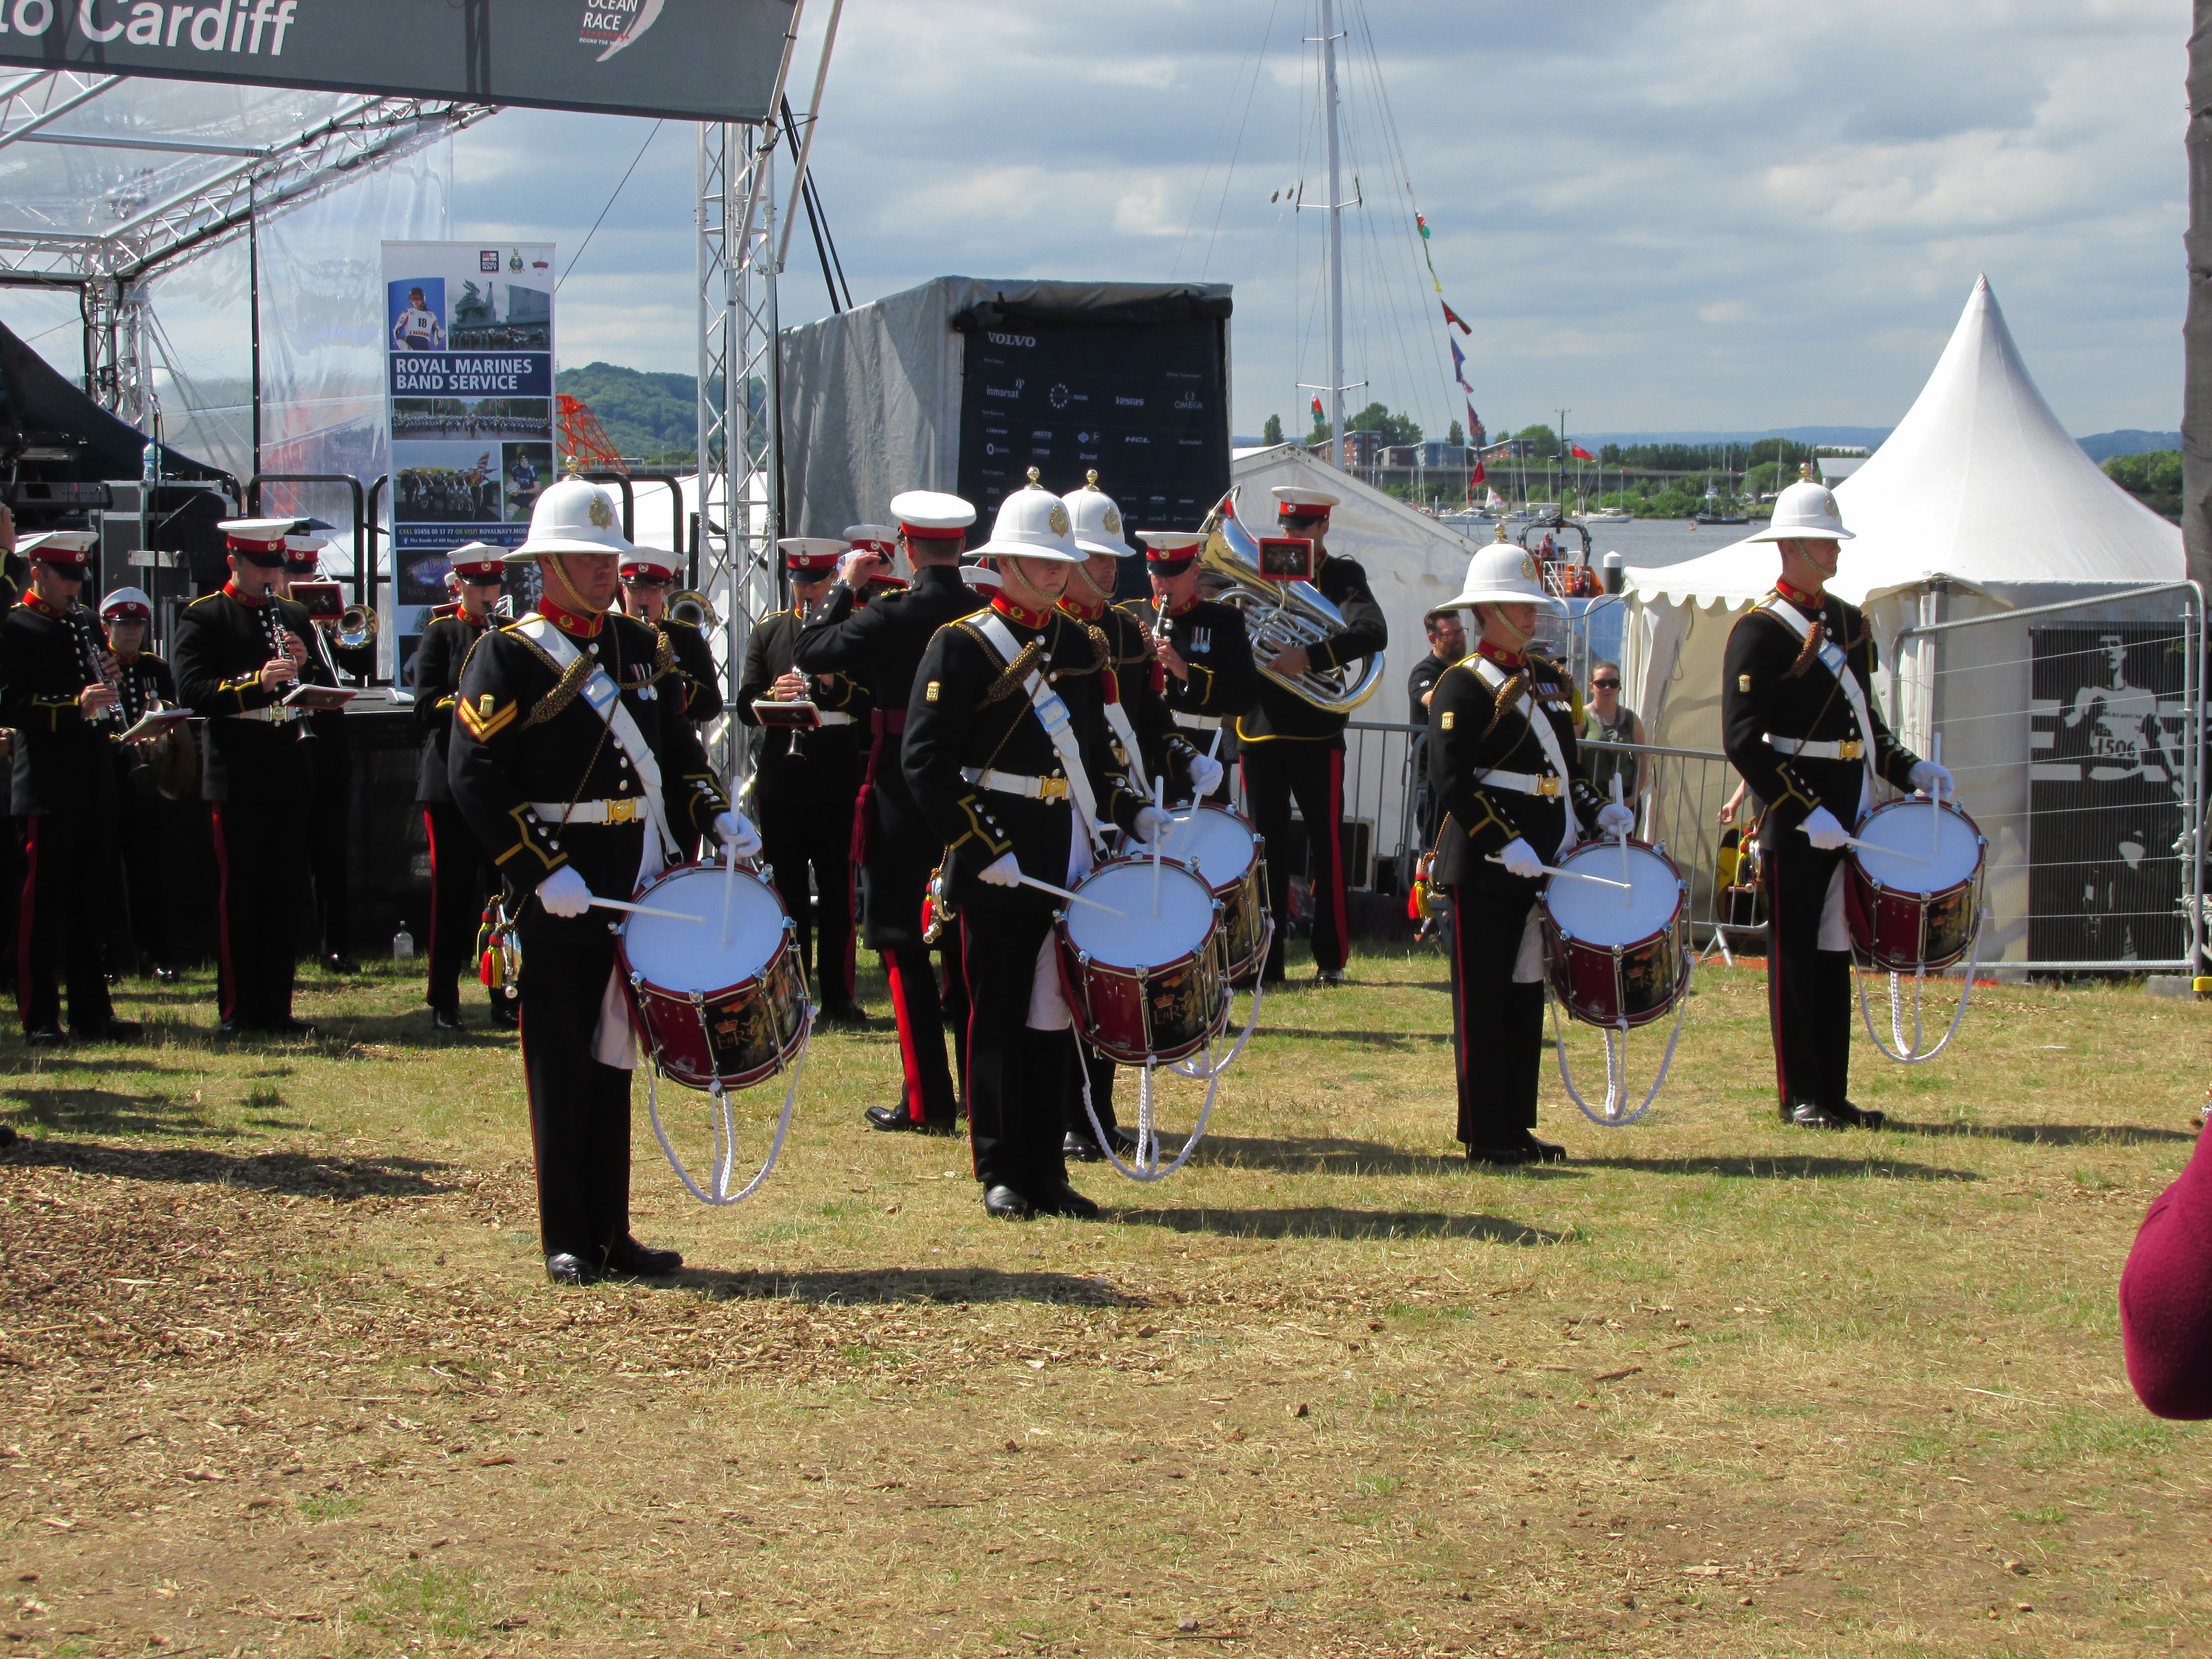 The Band of HM Royal Marines